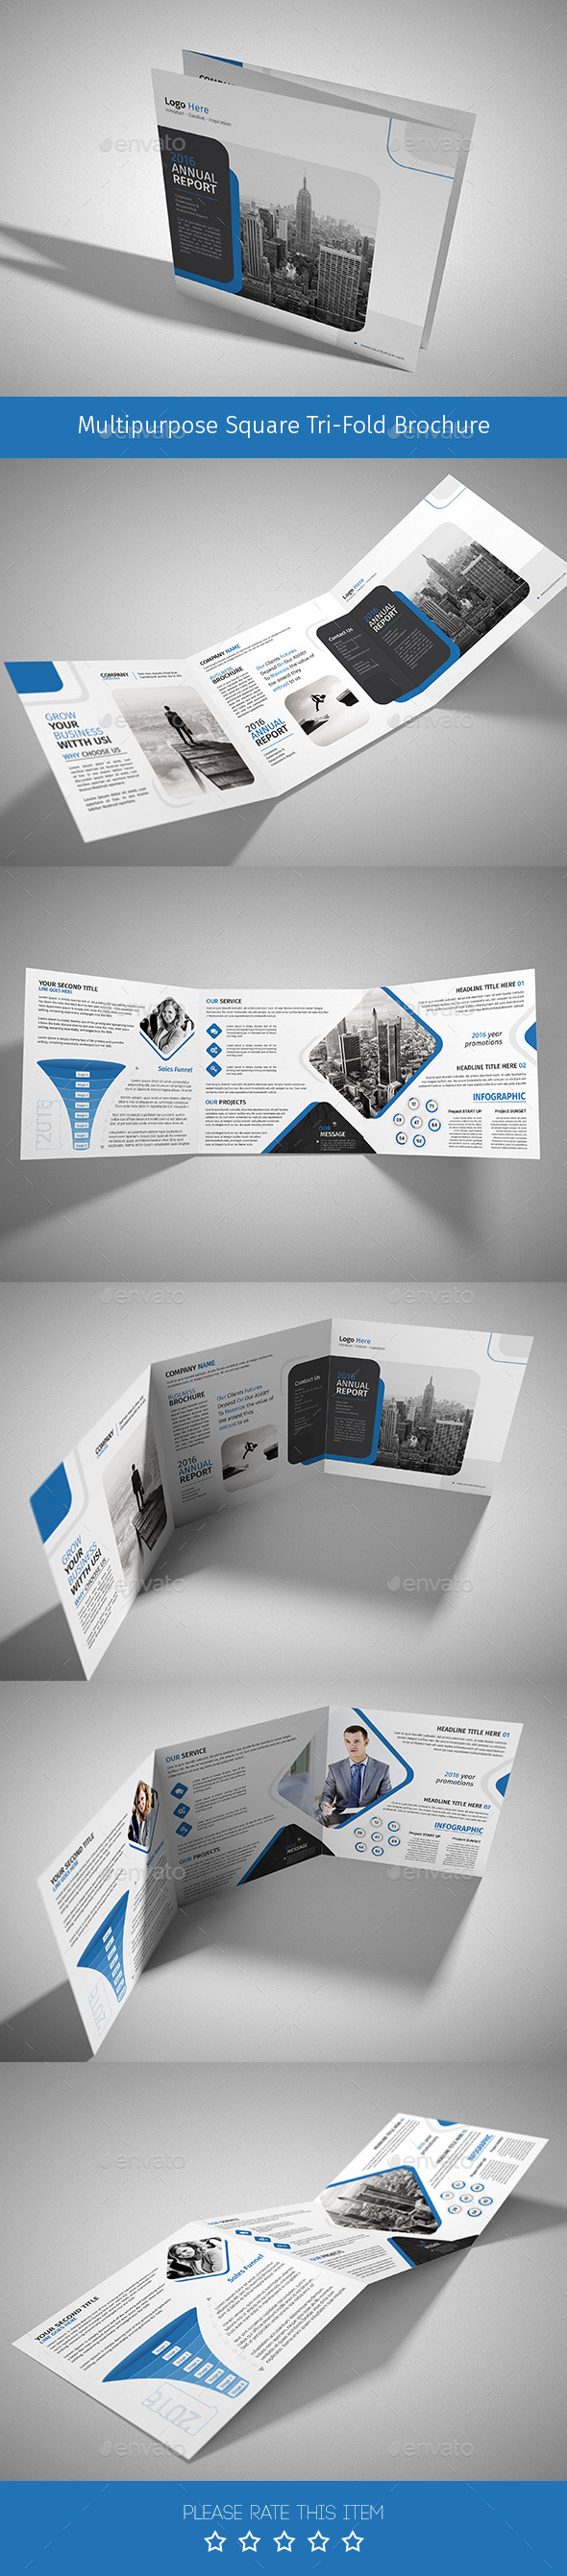 Corporate Tri-fold Square Brochure 10 - Corporate Brochures